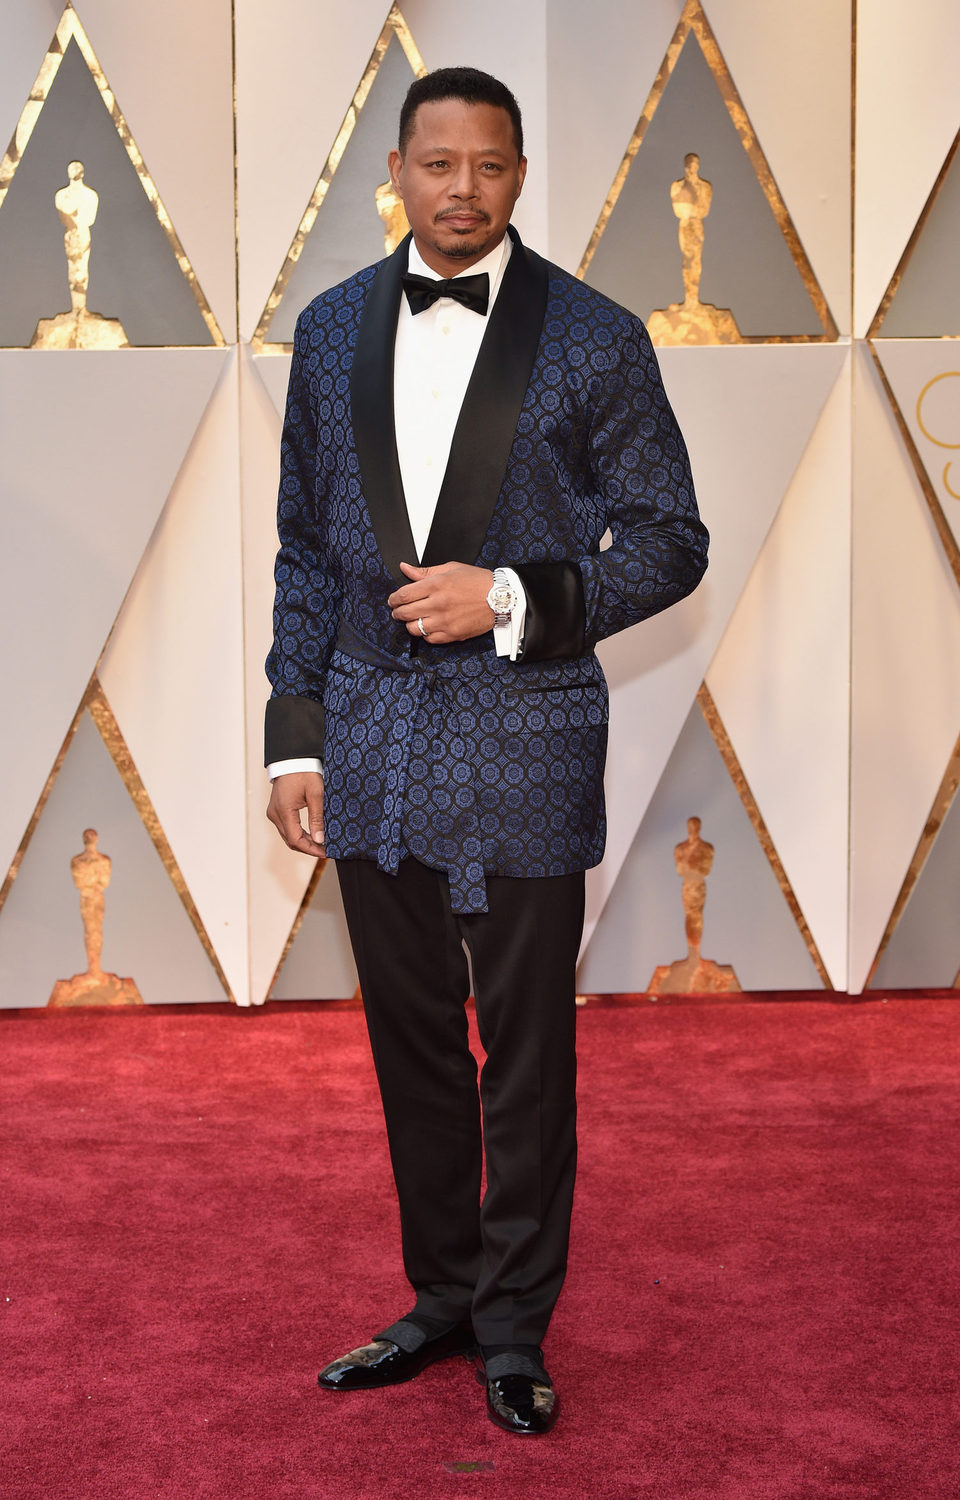 Terrence Howard at the Oscars 2017 red carpet